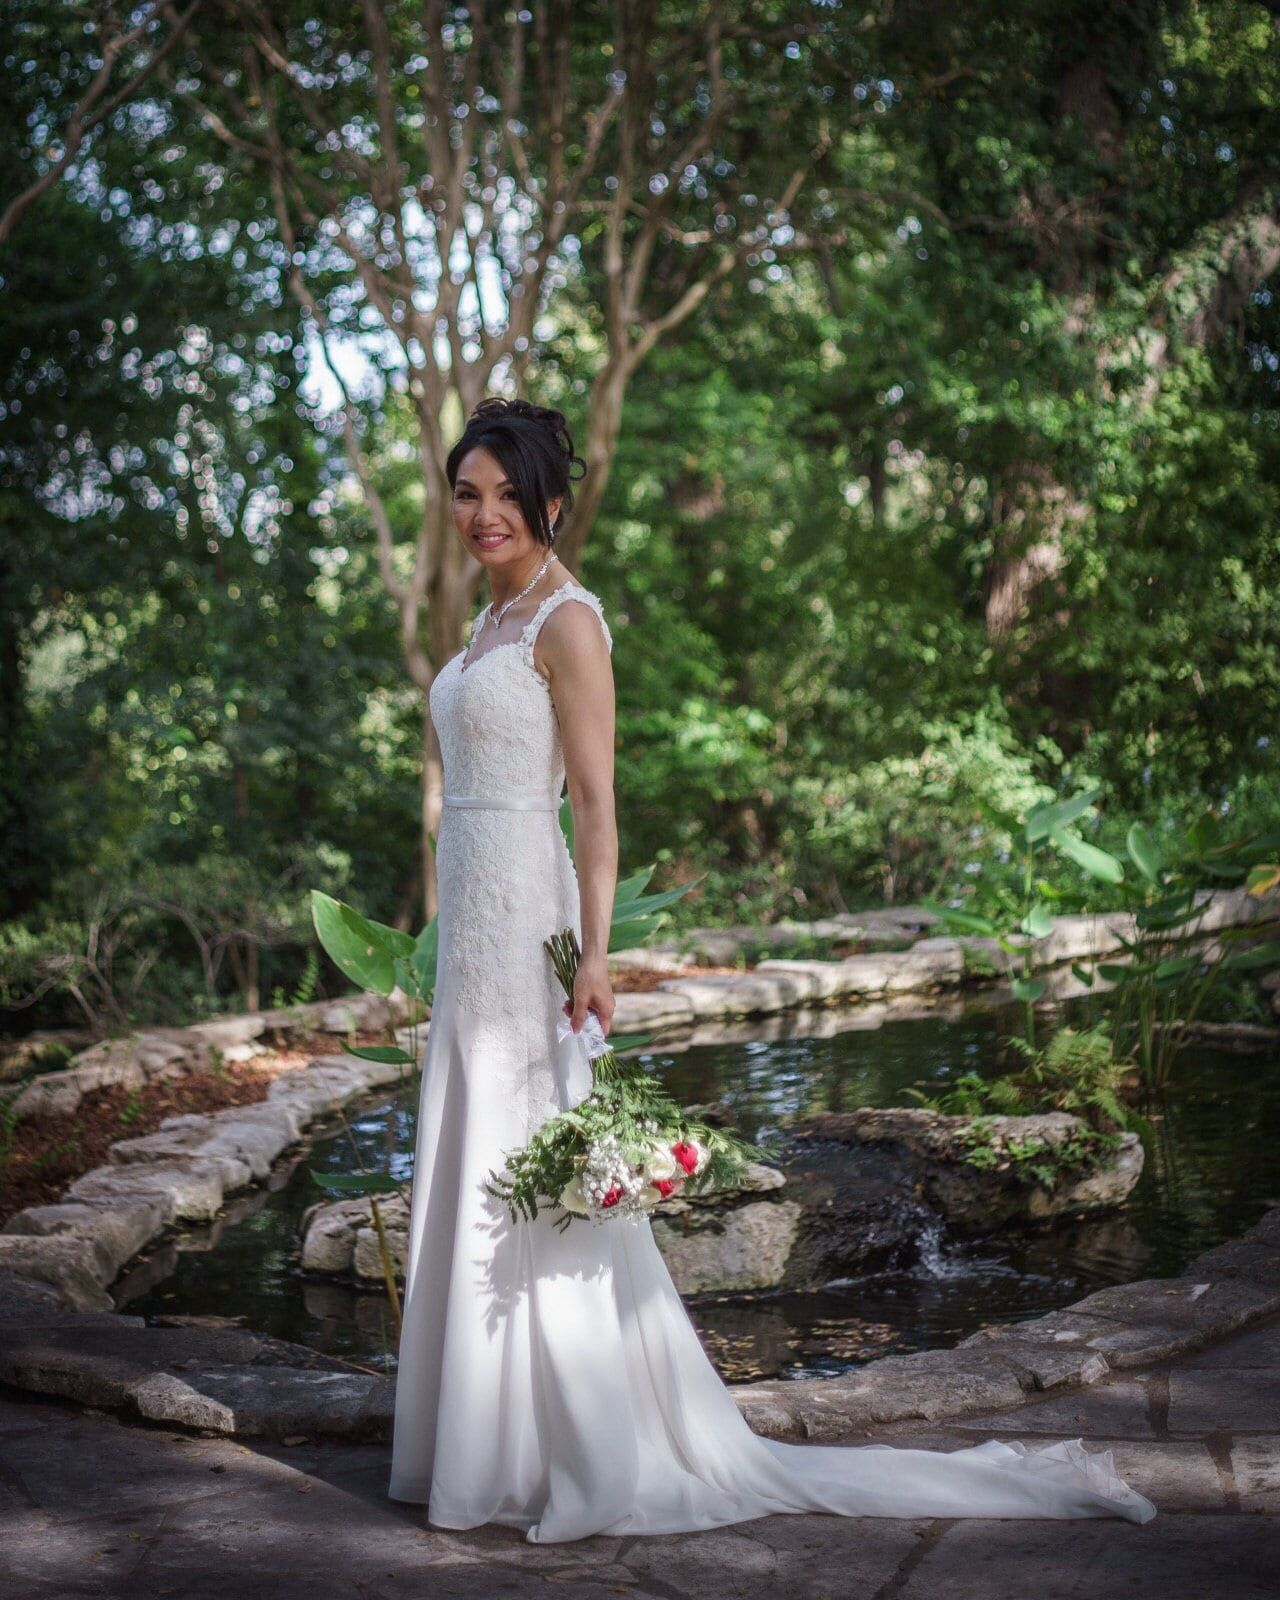 Wedding photoshoot at Zilker botanical gardens, Photographer: Daniel Mullins